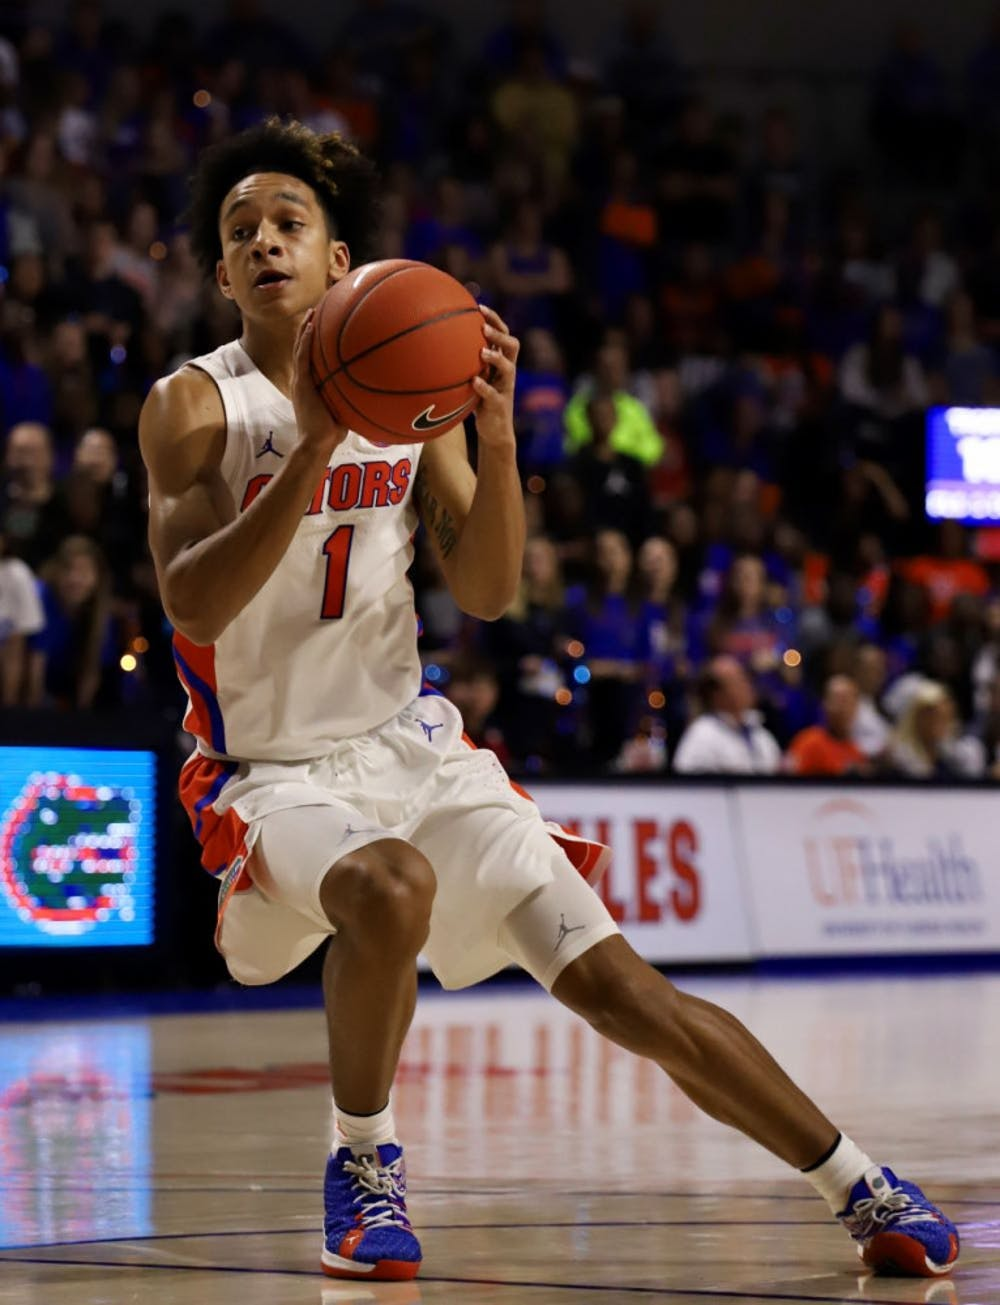 <p>The #Gators will play two games in the<span>Mohegan Sun at Connecticutthis week to start their 2020-2021 season.</span></p>